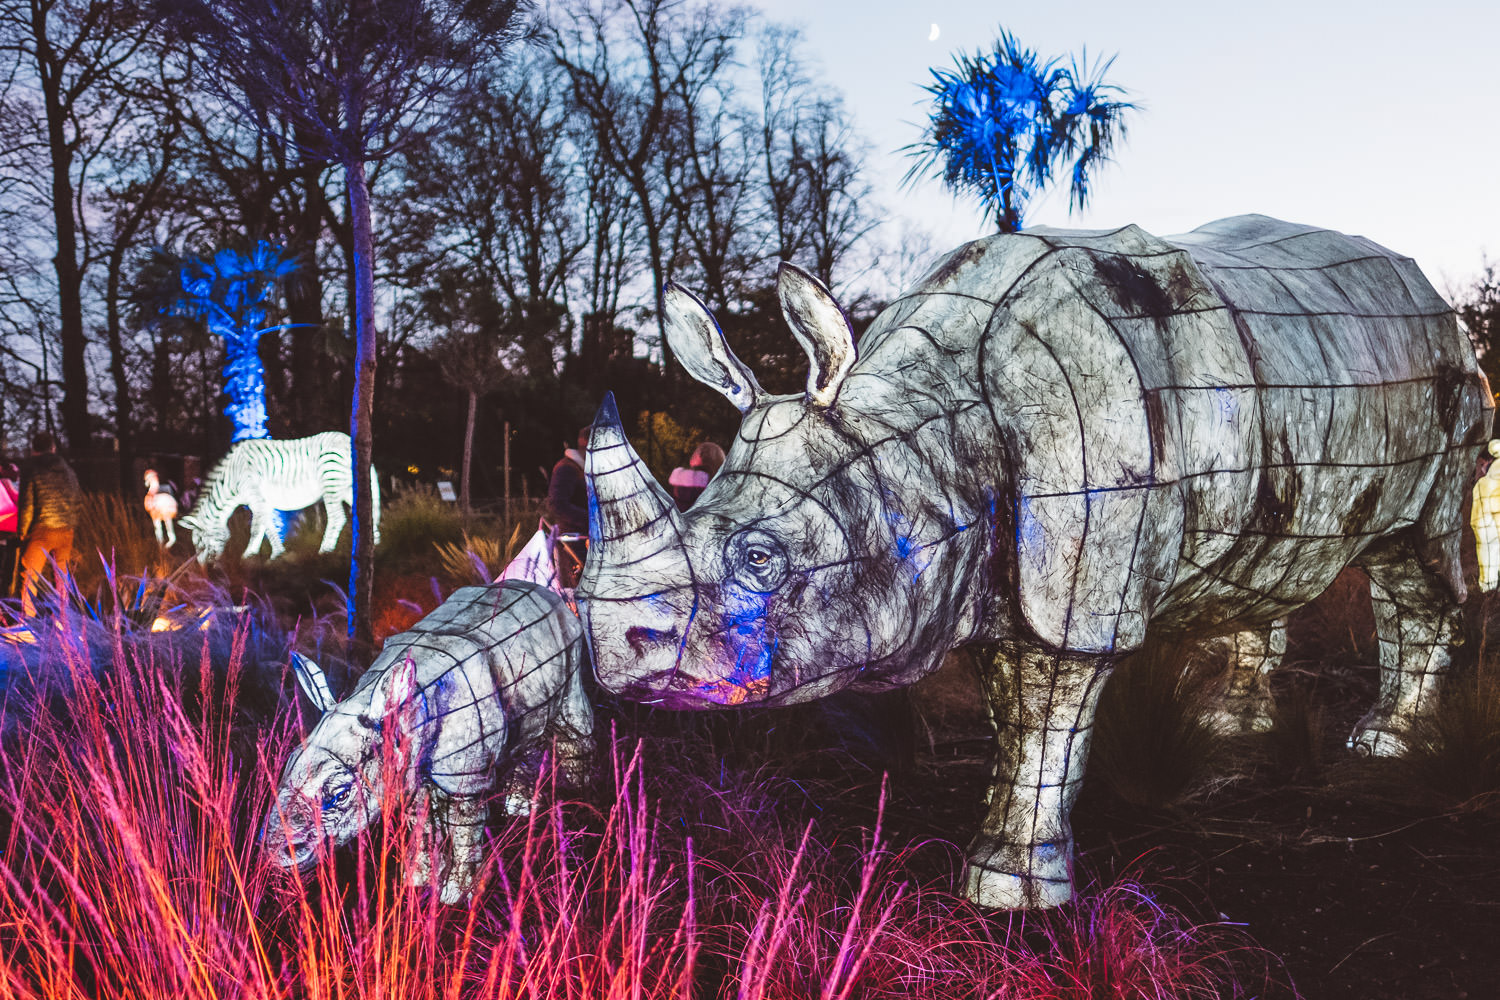 cocktail_saturdays_the_lanterns_at_chester_zoo-7803.jpg